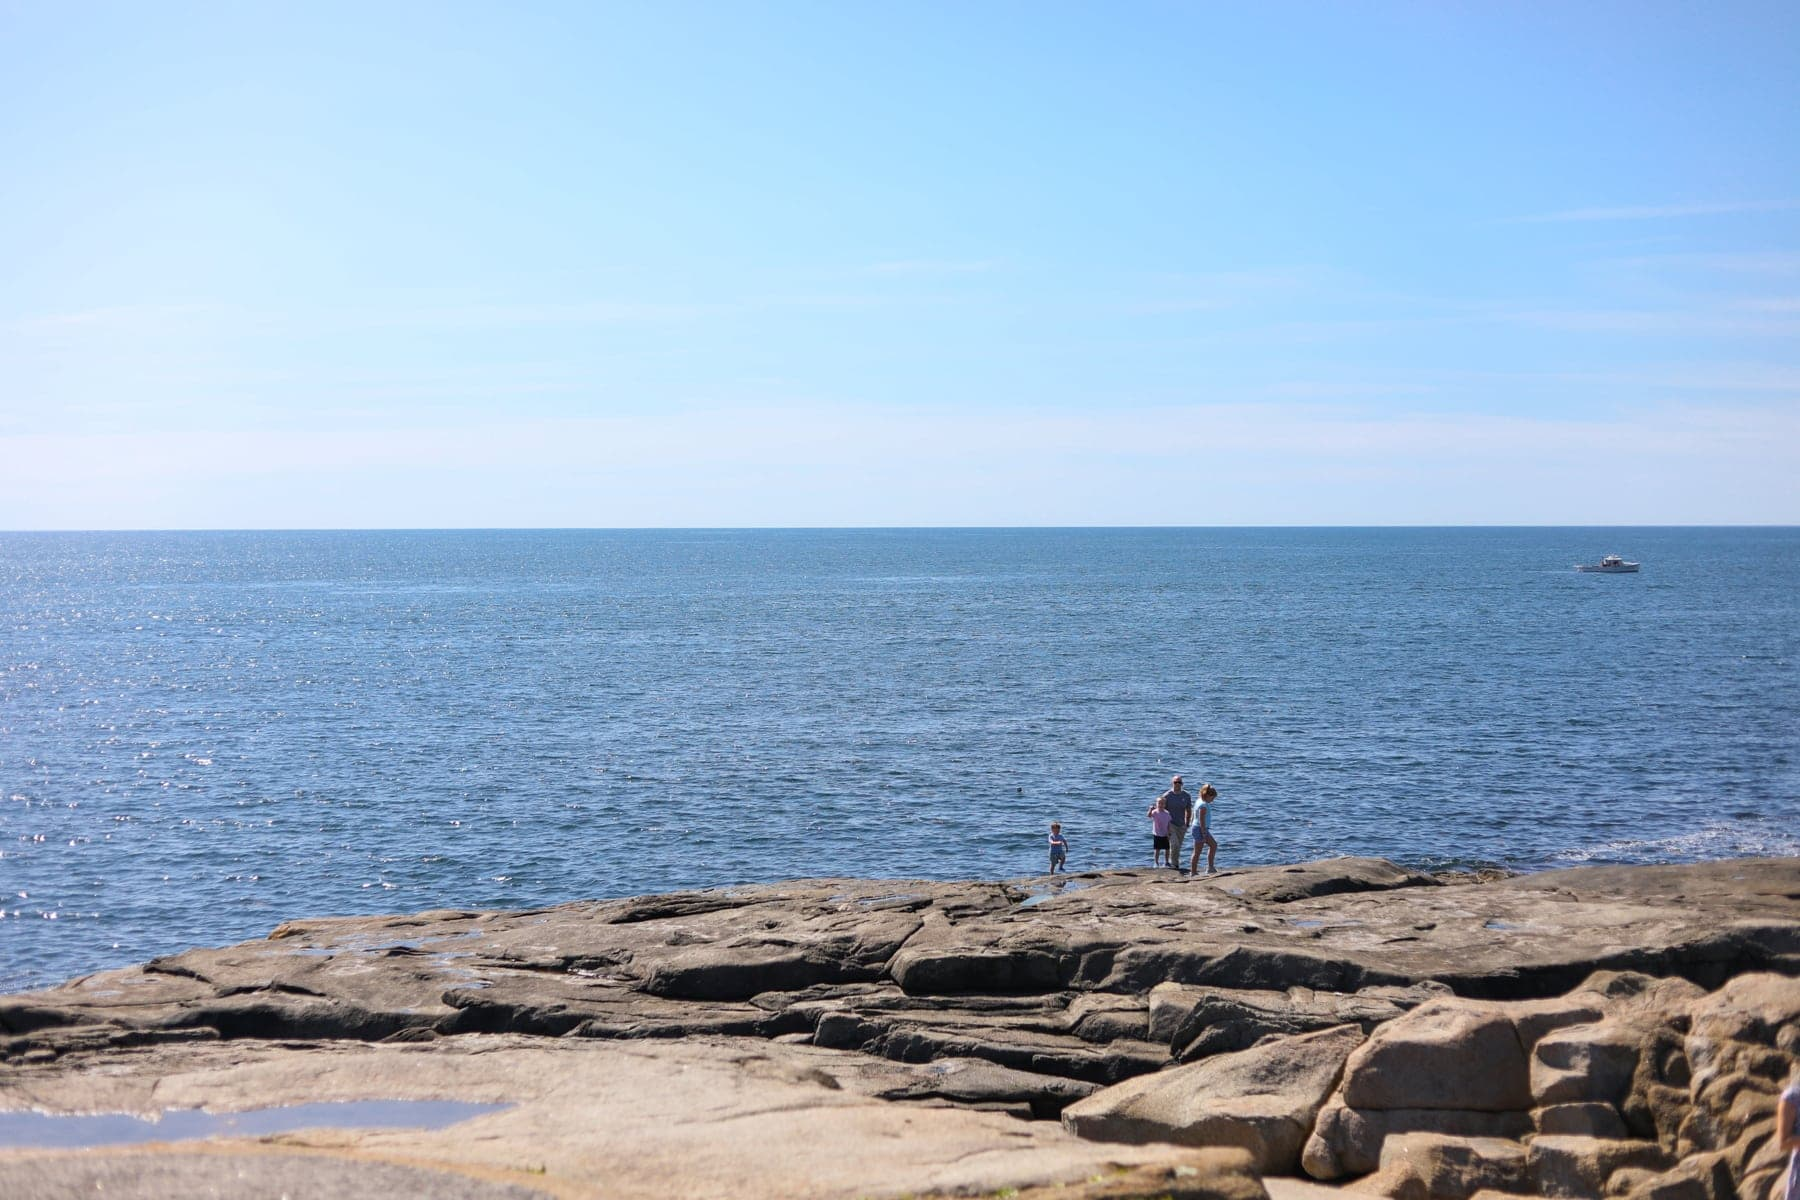 A group of people on a rocky beach next to the ocean